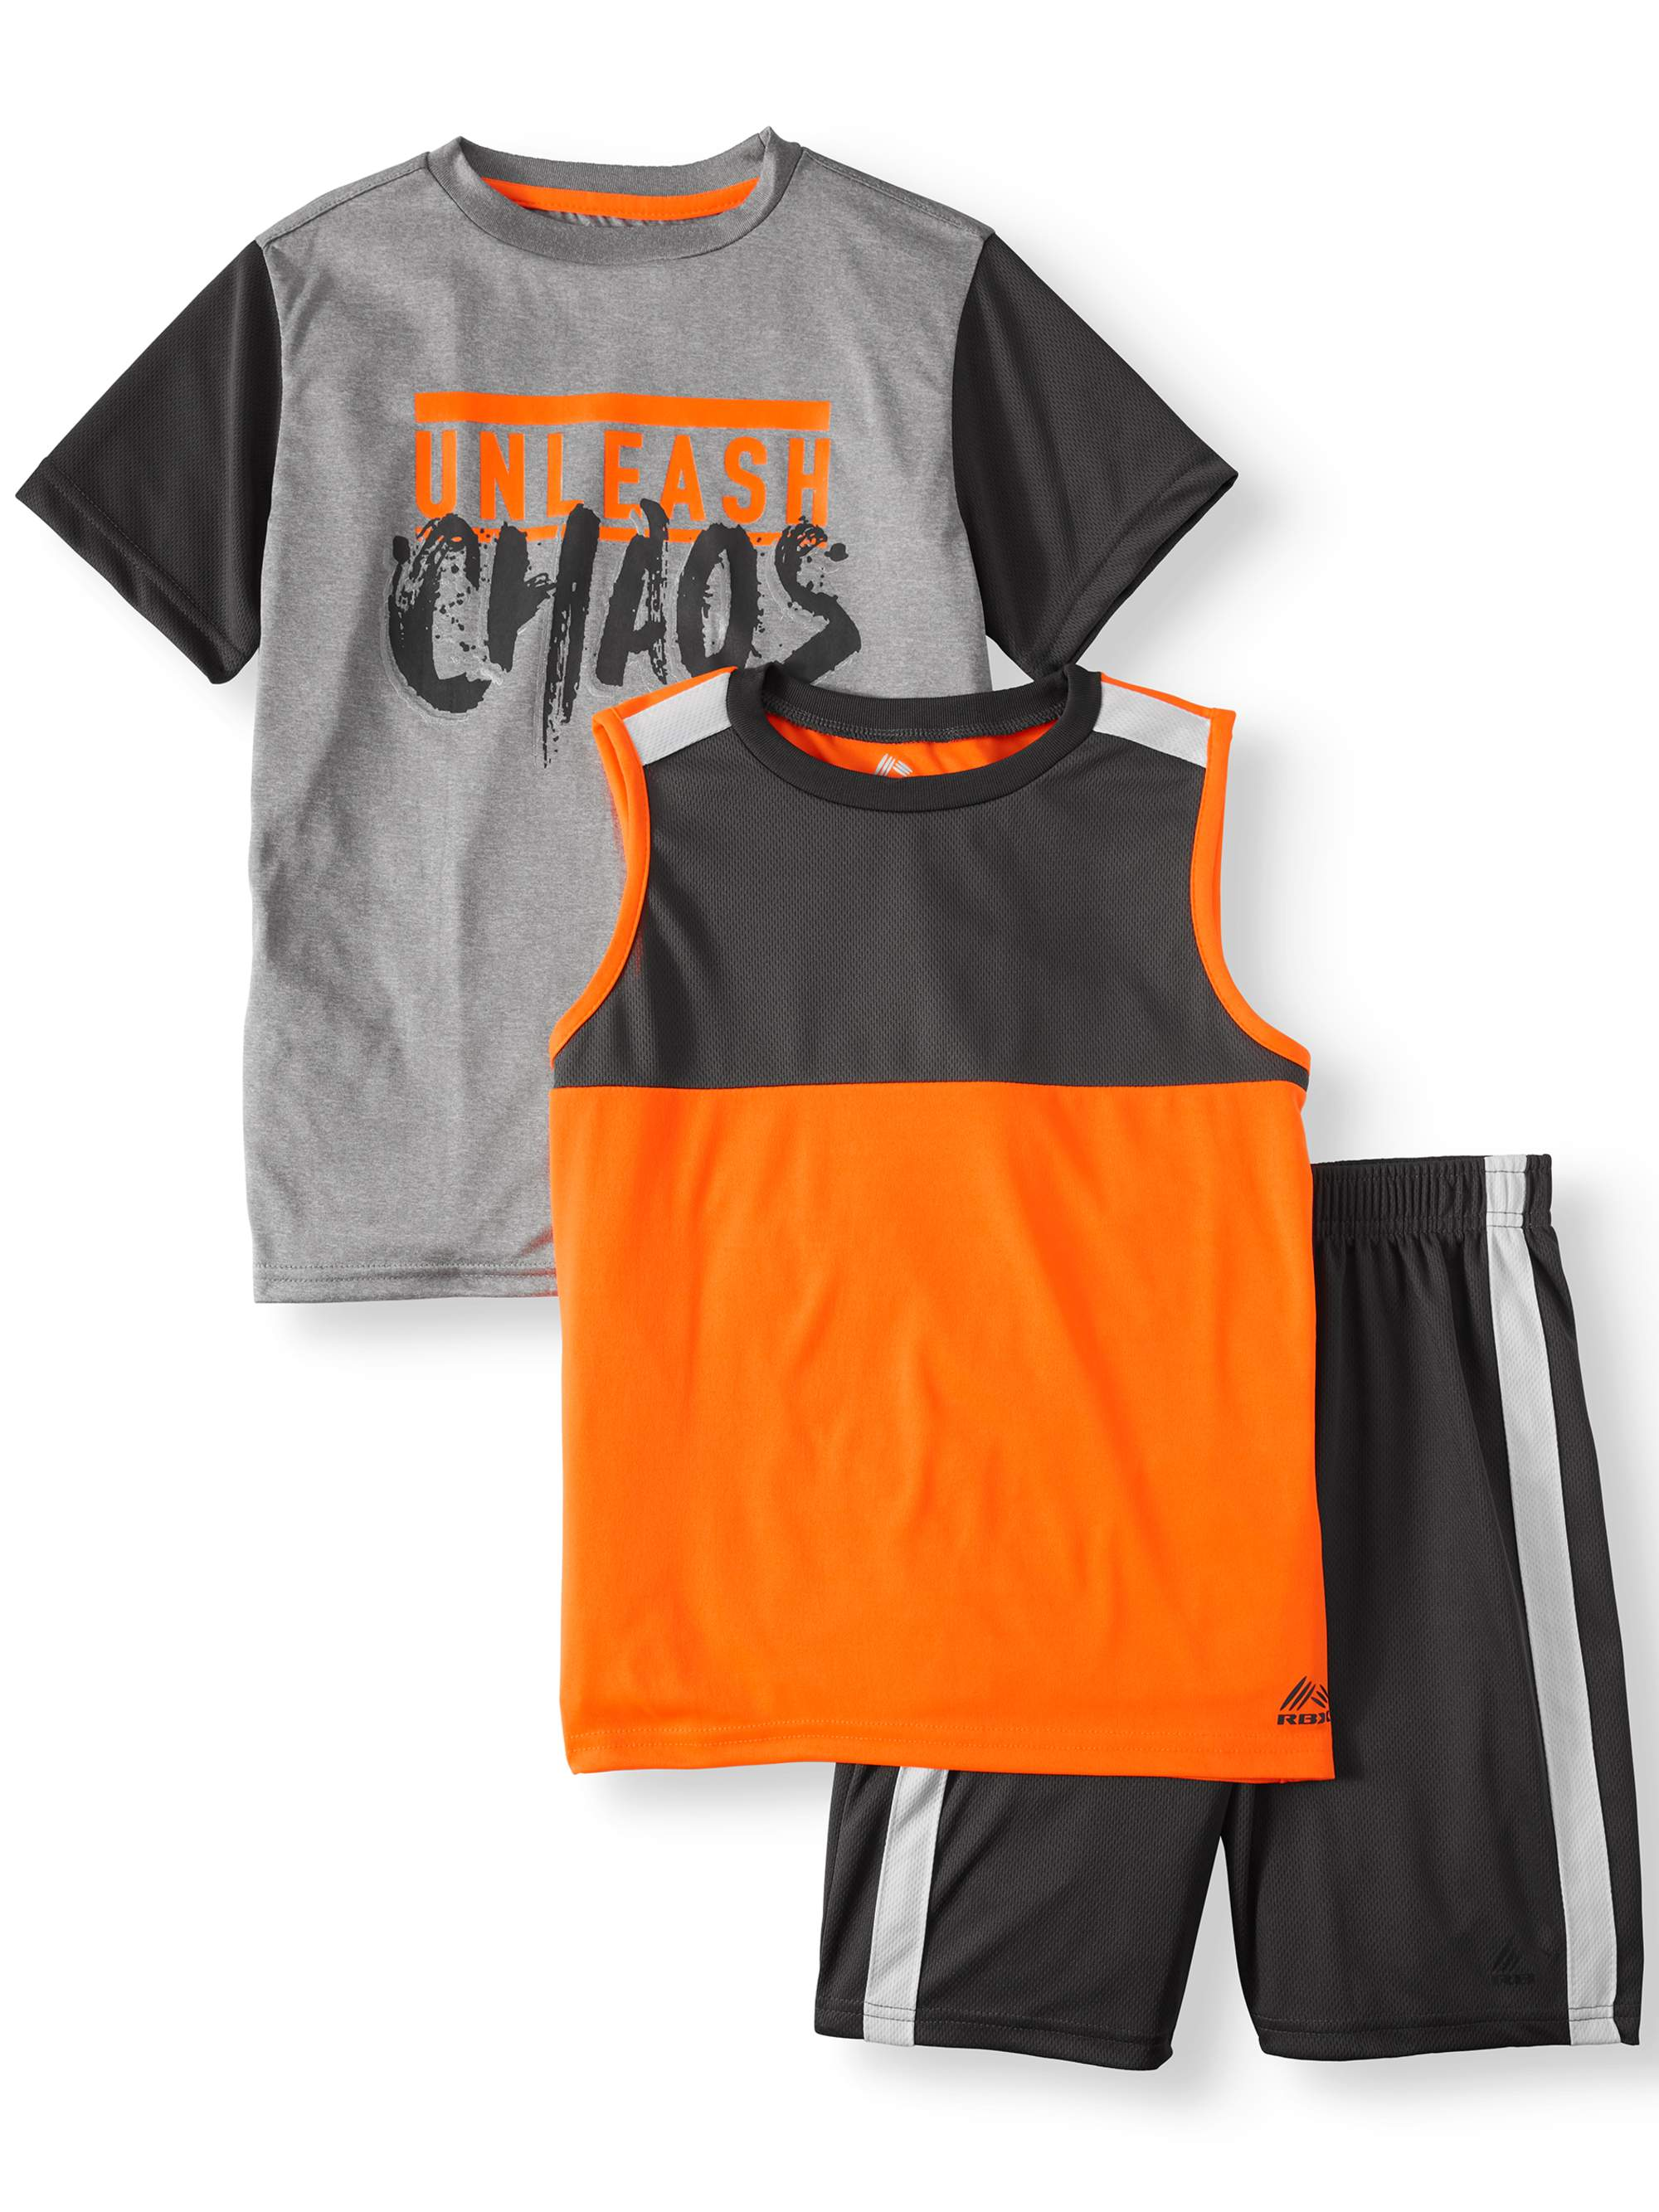 Graphic Tee, Muscle Tank, and Short, 3-Piece Outfit Set (Little Boys & Big Boys)